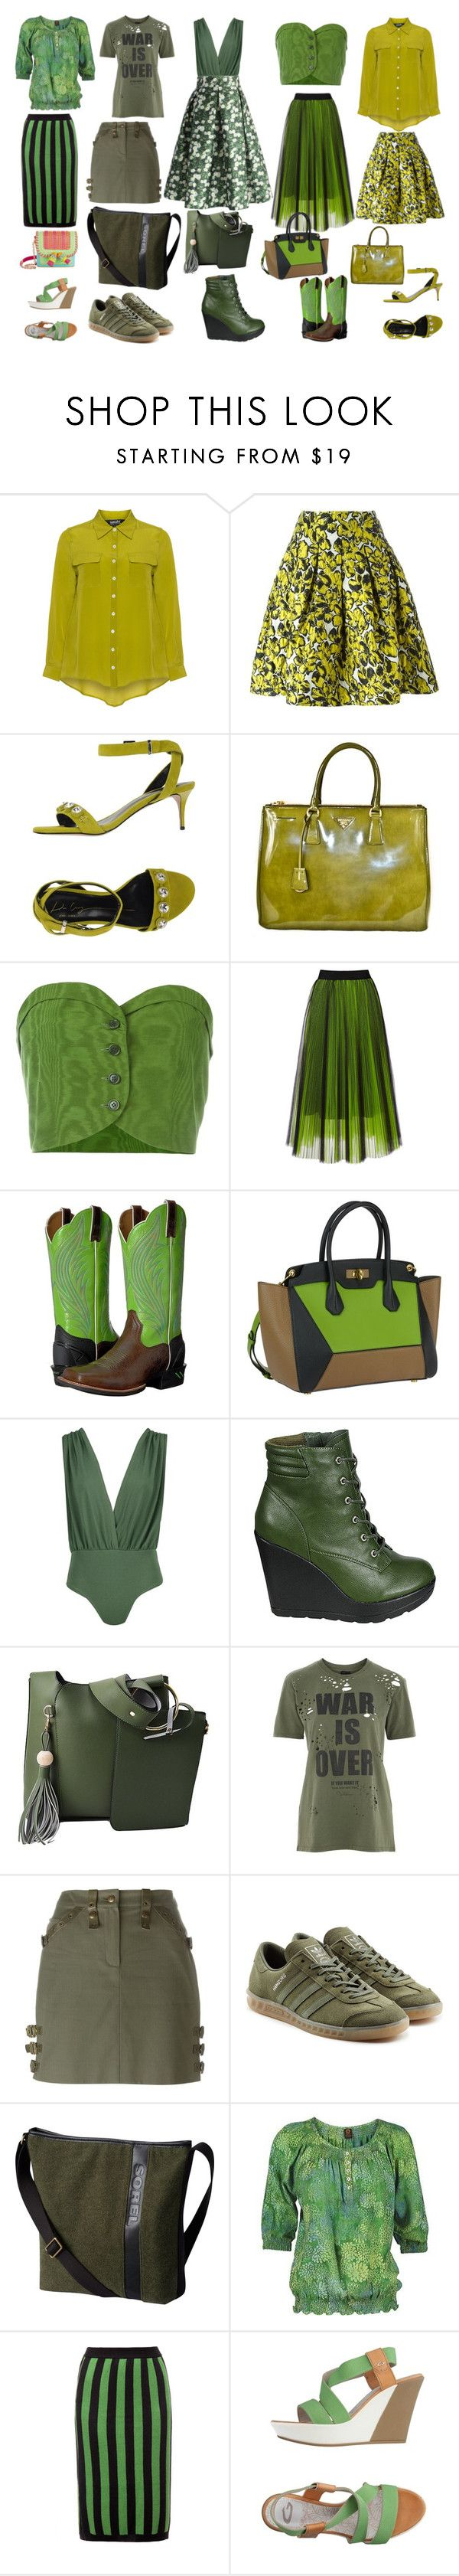 """Earth Rules"" by quinn-avina ❤ liked on Polyvore featuring navabi, Oscar de la Renta, Lola Cruz, Prada, Romeo Gigli, MSGM, Ariat, Bally, Boohoo and Breckelle's"